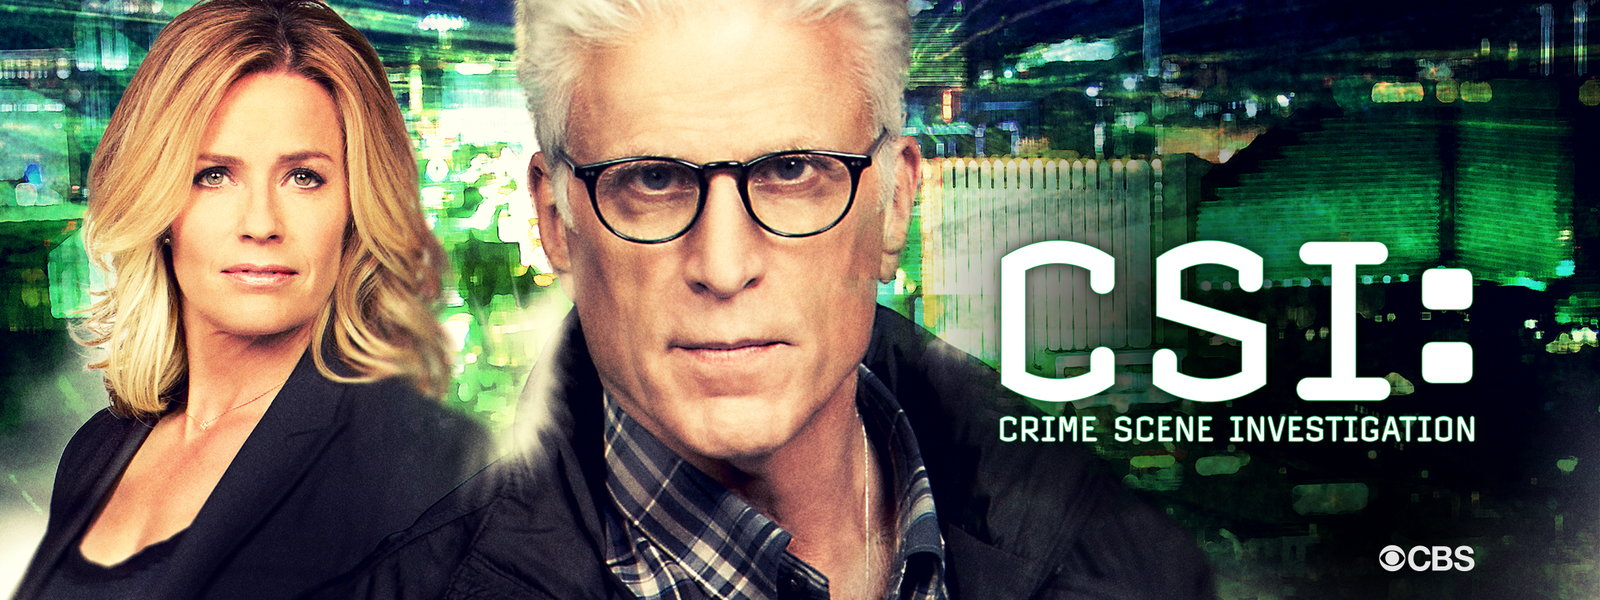 This runs pretty close to my idealised hair  - but what have they done to Ted Danson's mouth ? Is that what this episode was about ? The mysterious disappearance of Ted's upper lip?